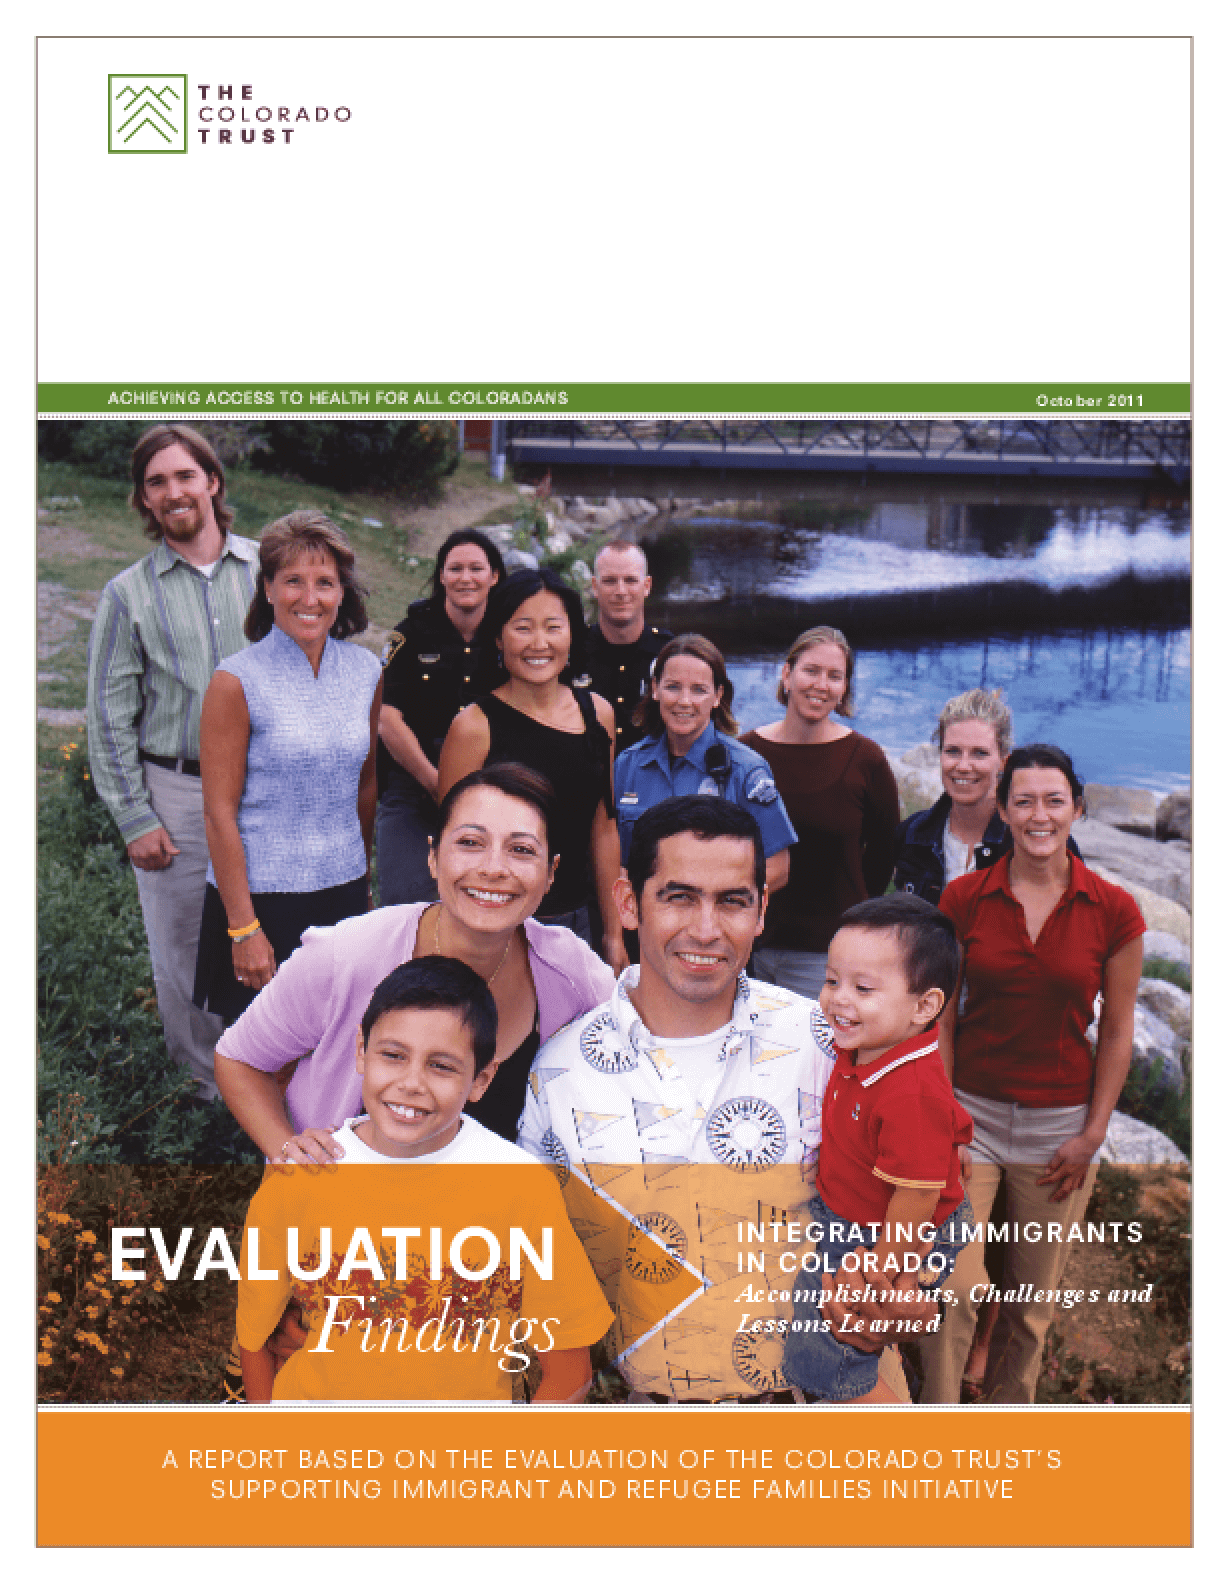 Integrating Immigrants in Colorado: Accomplishments, Challenges and Lessons Learned